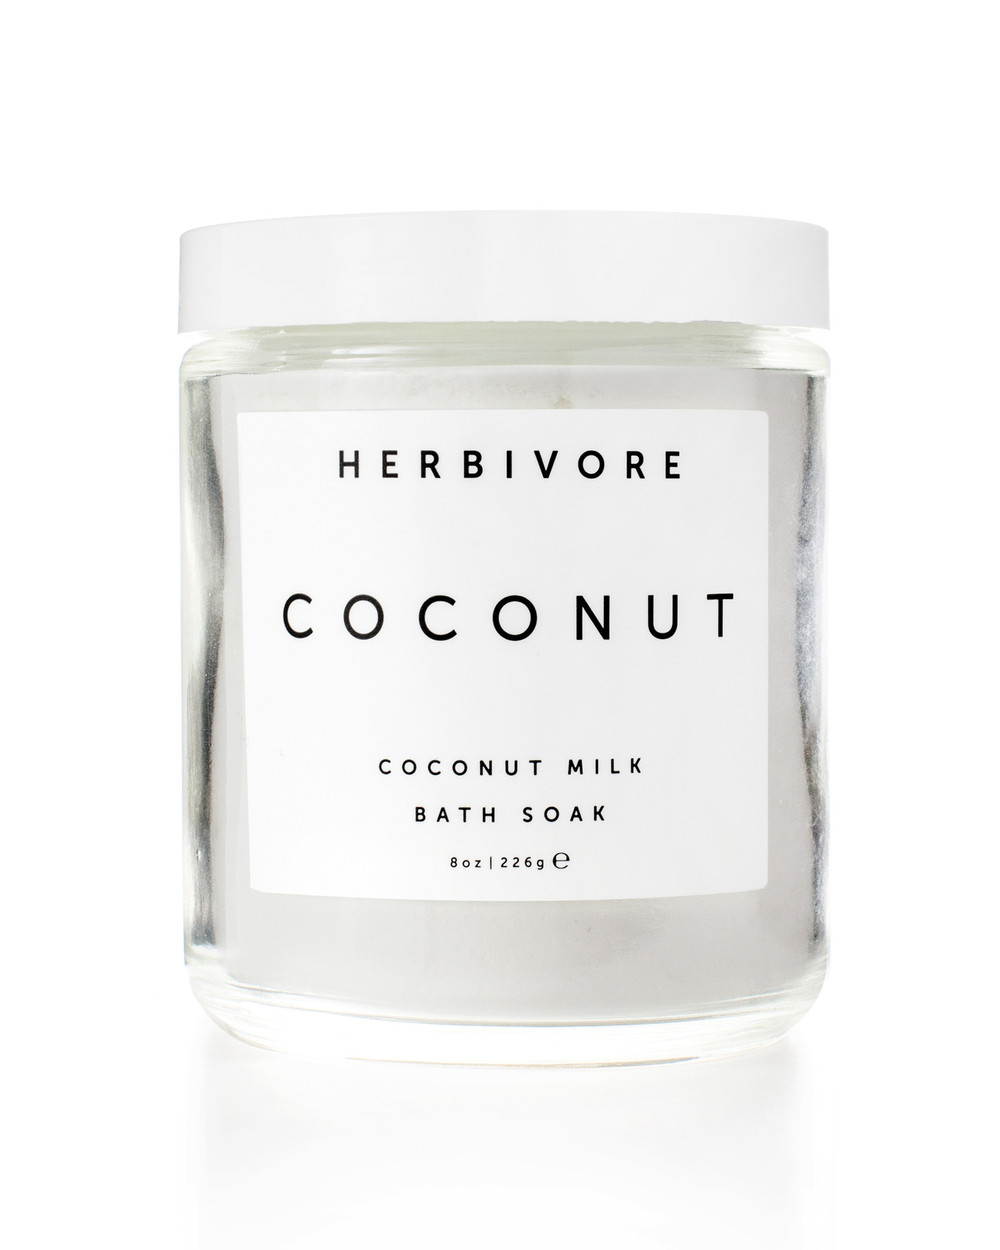 HB_Coconut_CoconutMilk_BathSoak_8oz_01.jpg